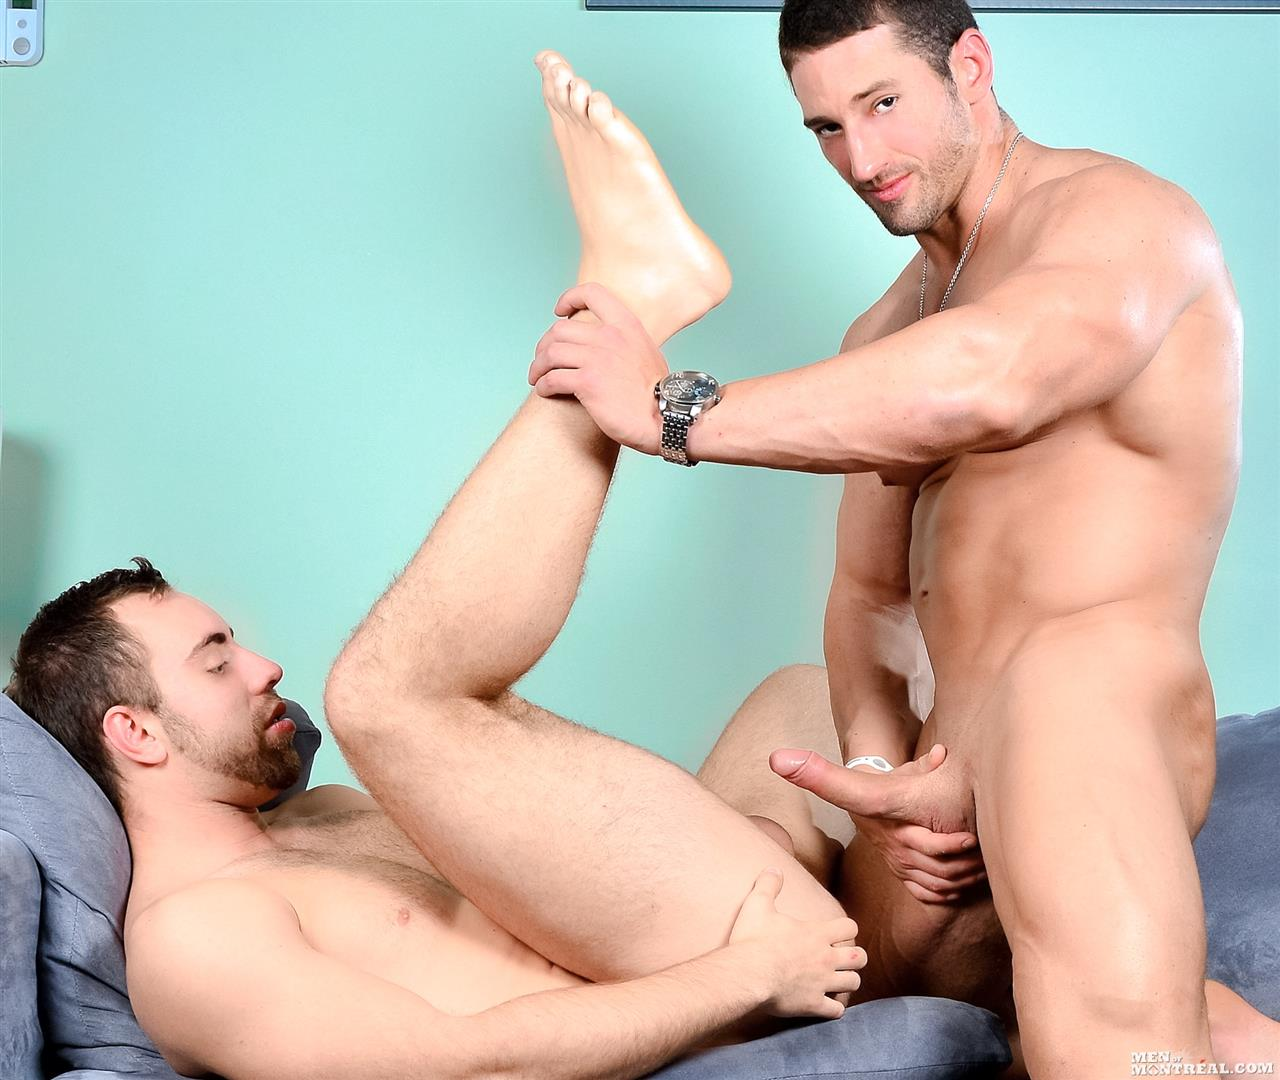 Men of Montreal Alec Leduc and Christian Power Muscle Body Builders Fucking Big Uncut Cocks Amateur Gay Porn 14 Big Uncut Cock Amateur Canadian Body Builders Fucking Hard